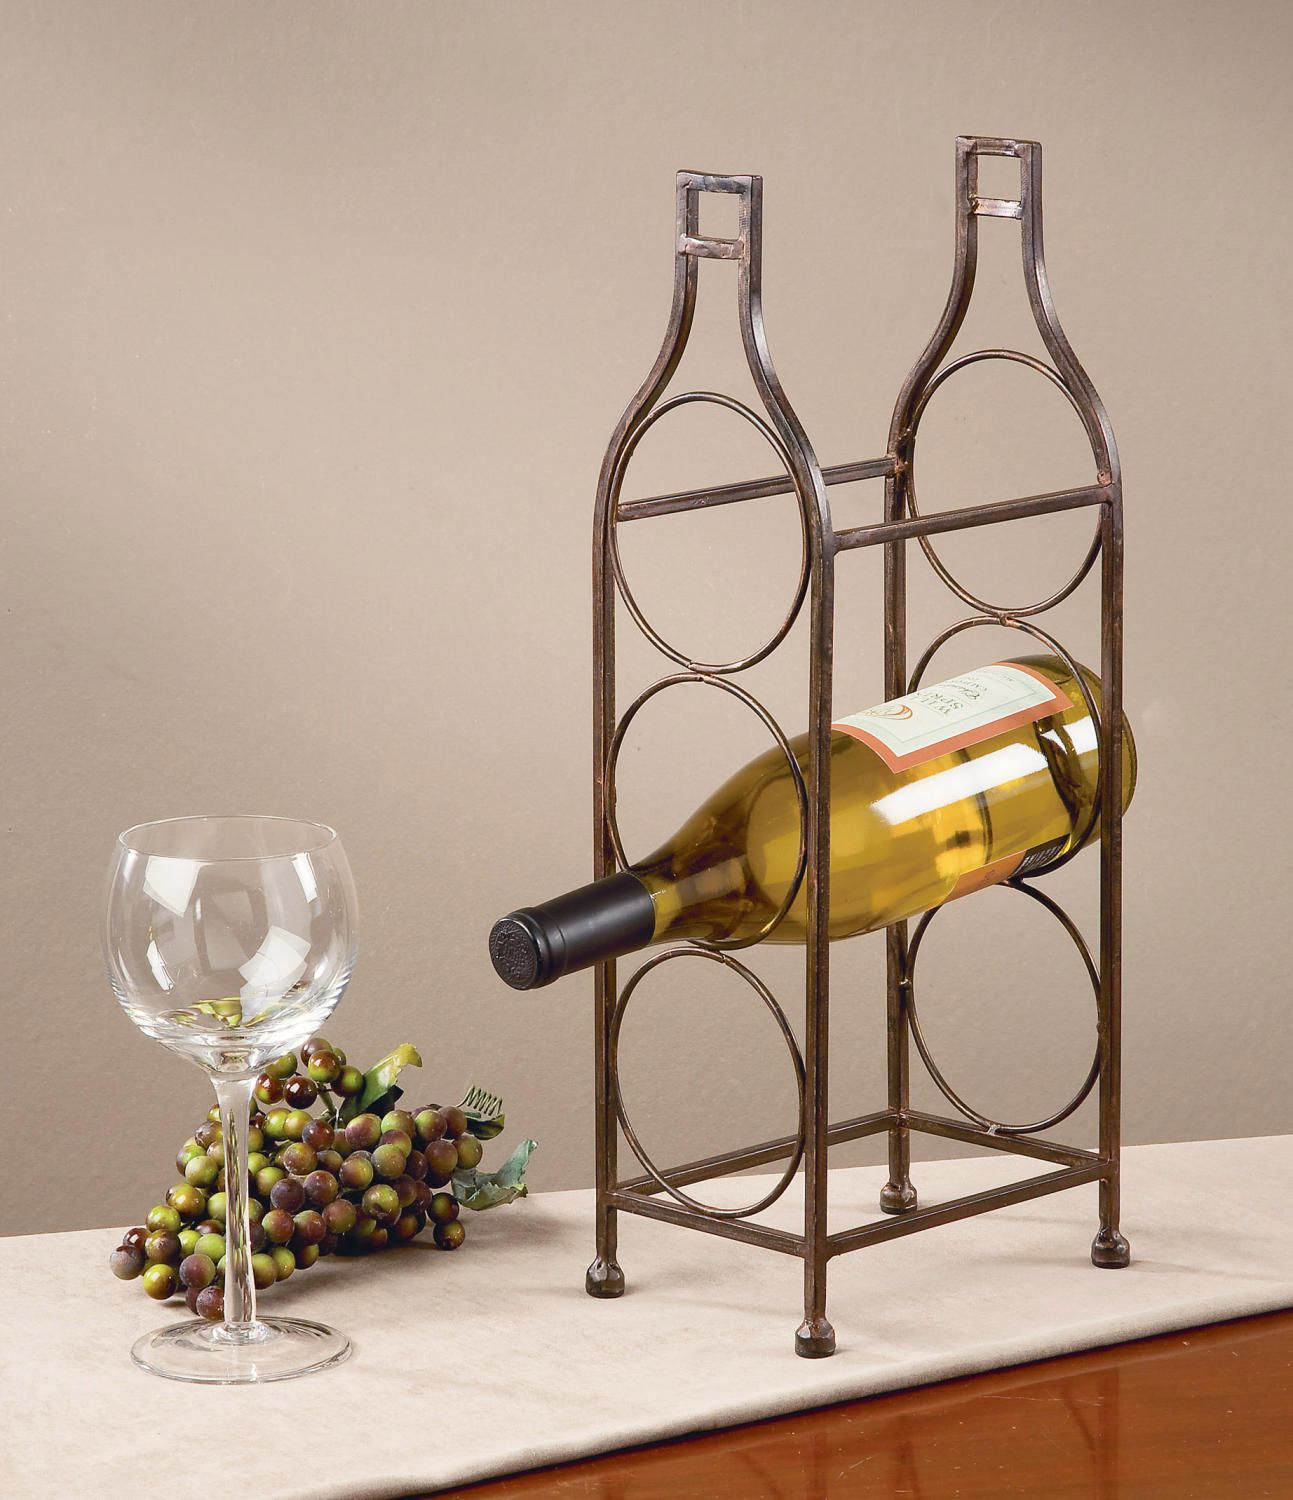 Wall Bottle Holders Wine Bottle Holder Wine Accessories Wine Wine